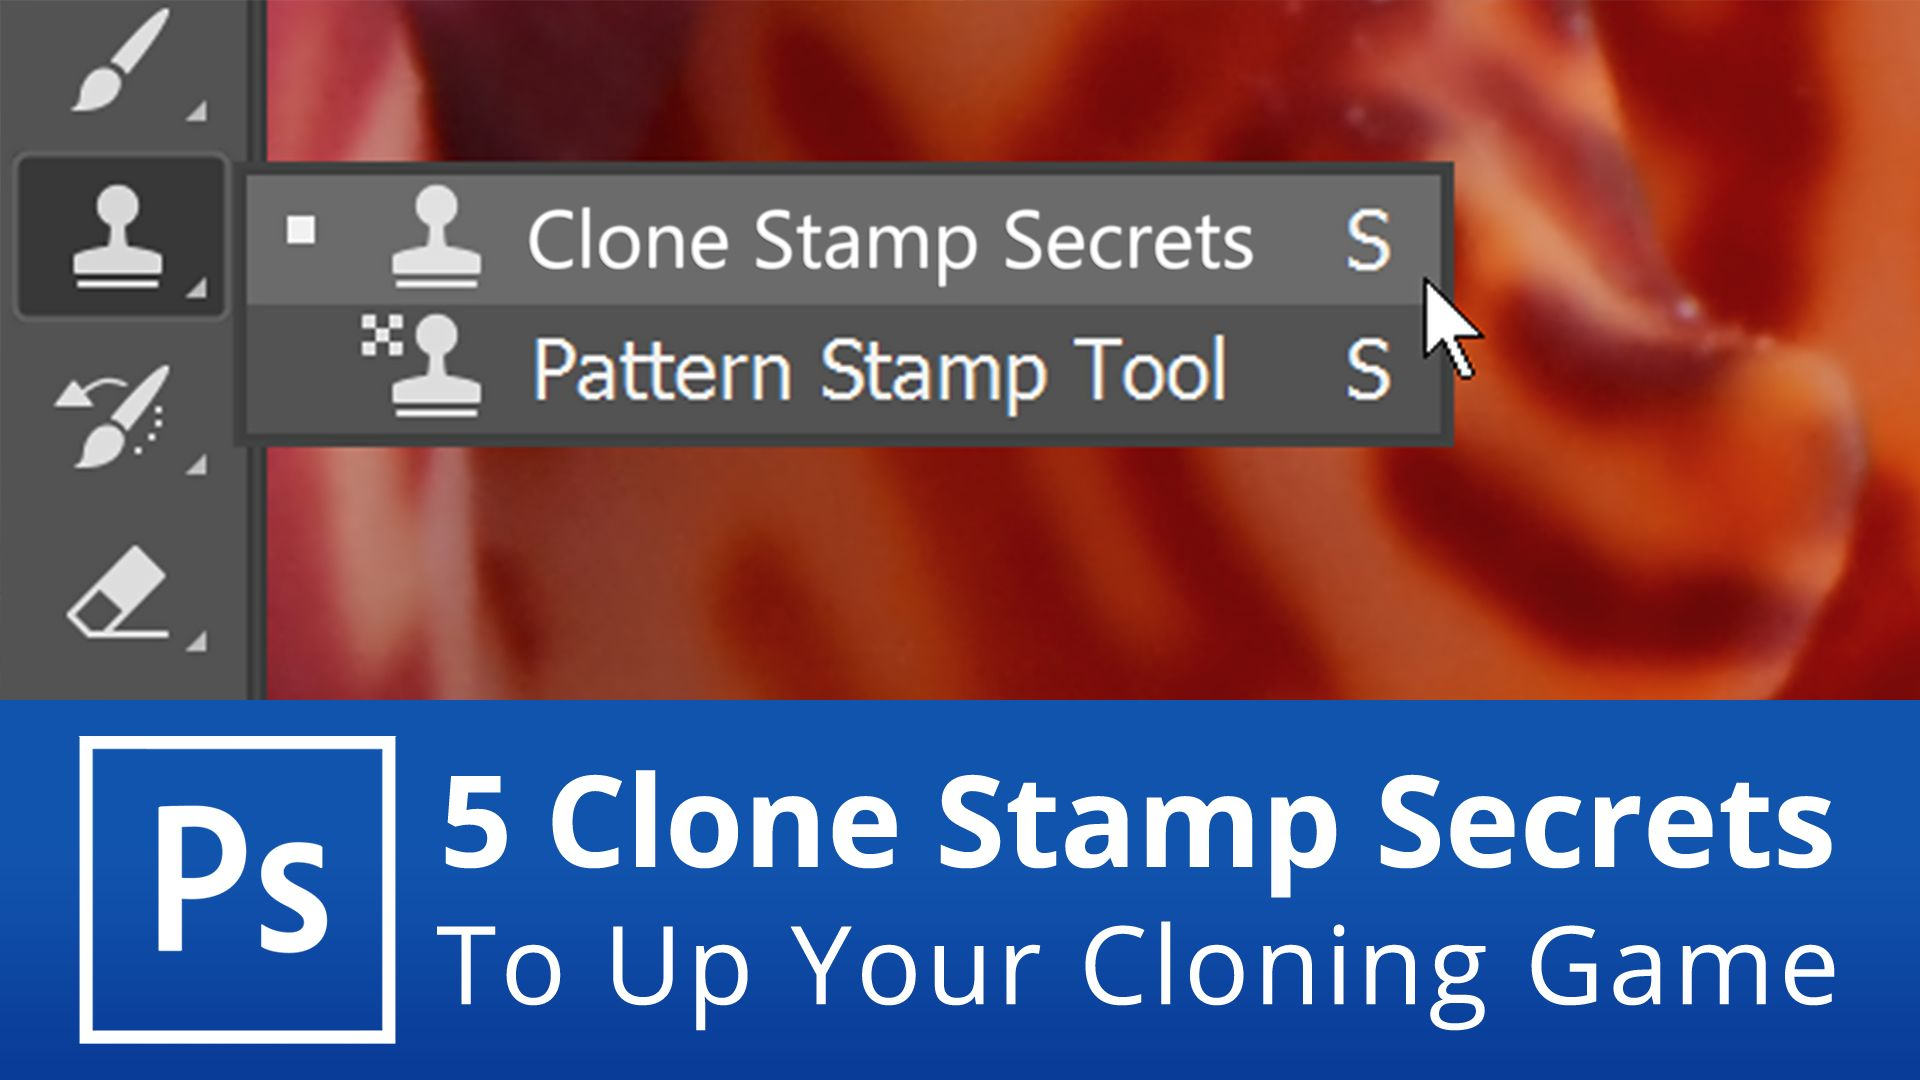 Photoshop 5 5 Clone Stamp Secrets To Up Your Photoshop Cloning Game